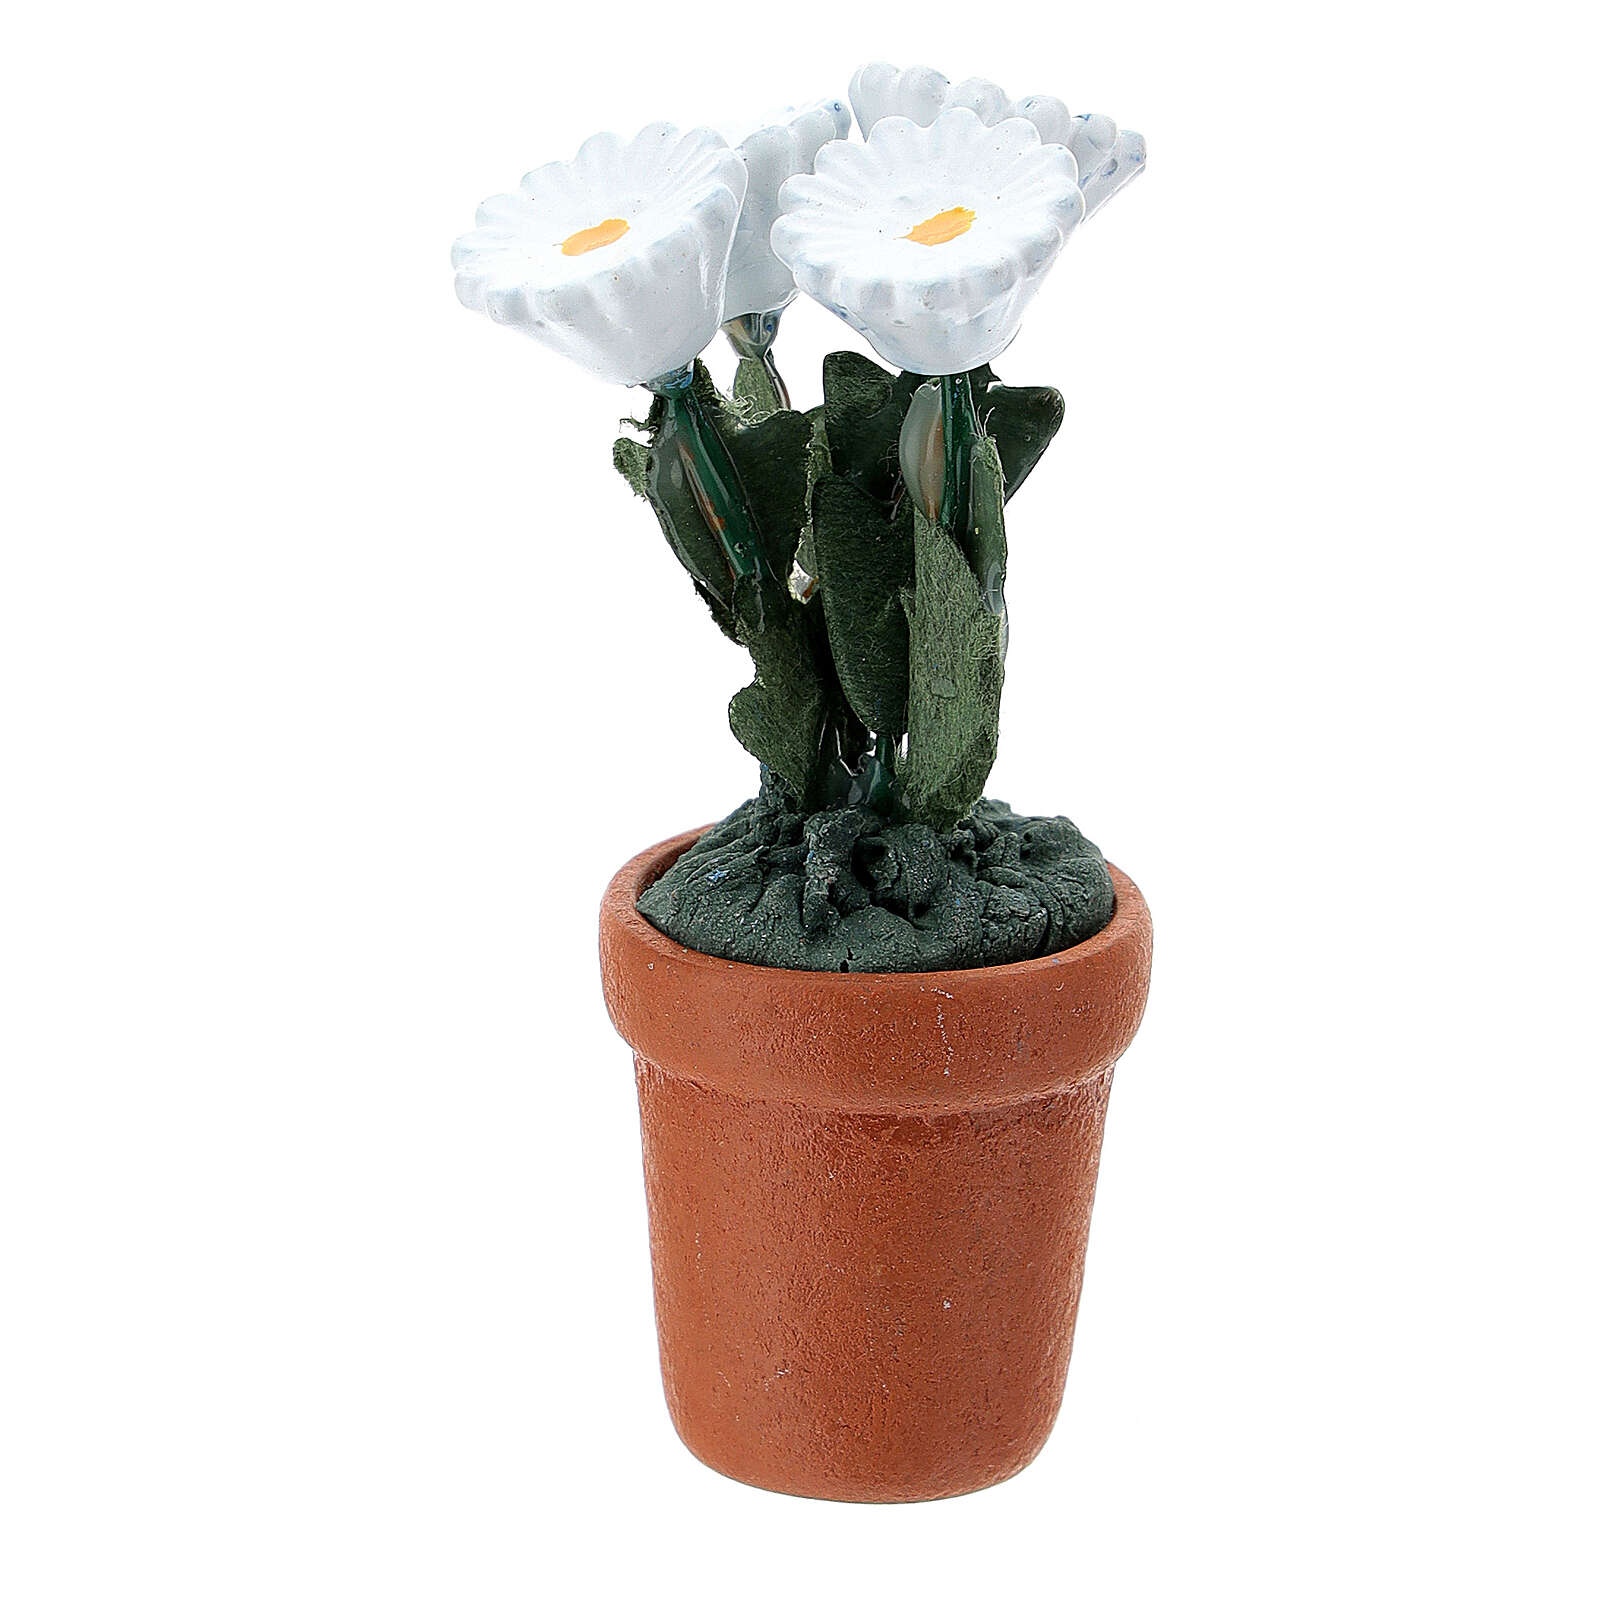 Flower pot different models 4x2 cm for Nativity Scene with 10 cm figurines 4